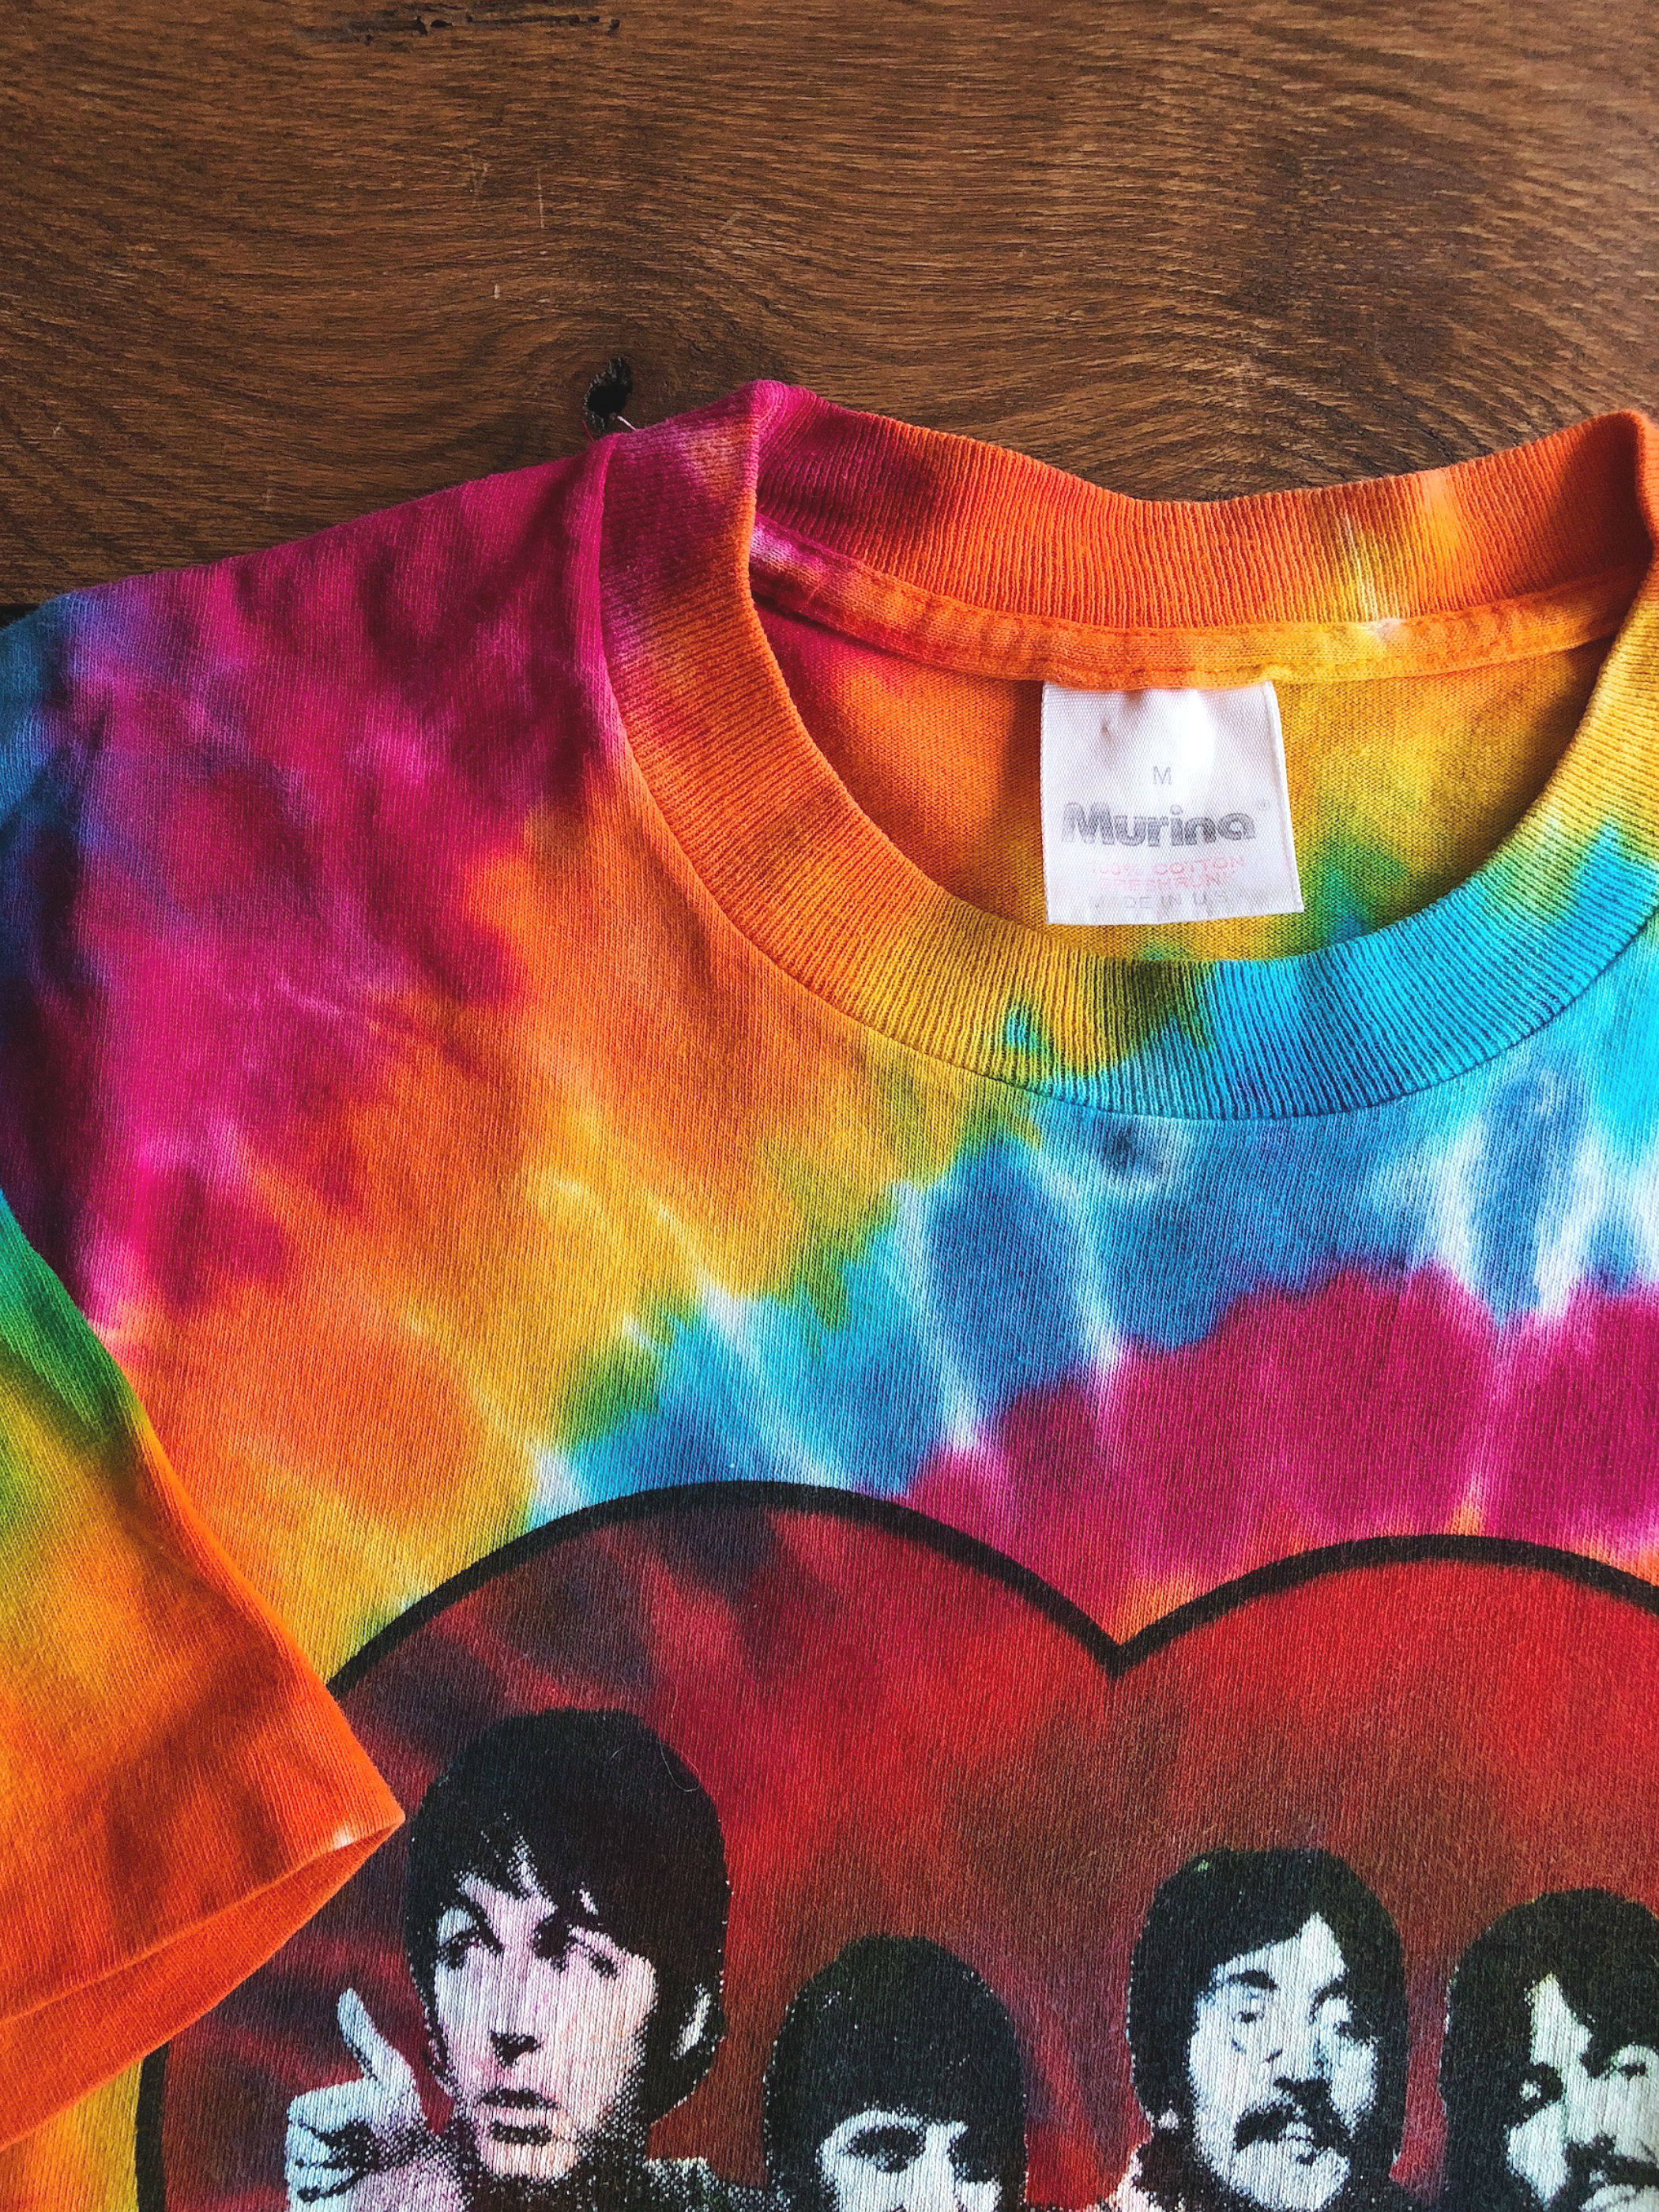 The Beatles/Sgt. Pepper's Lonely Hearts Club Band Tie-Dye T-shirt